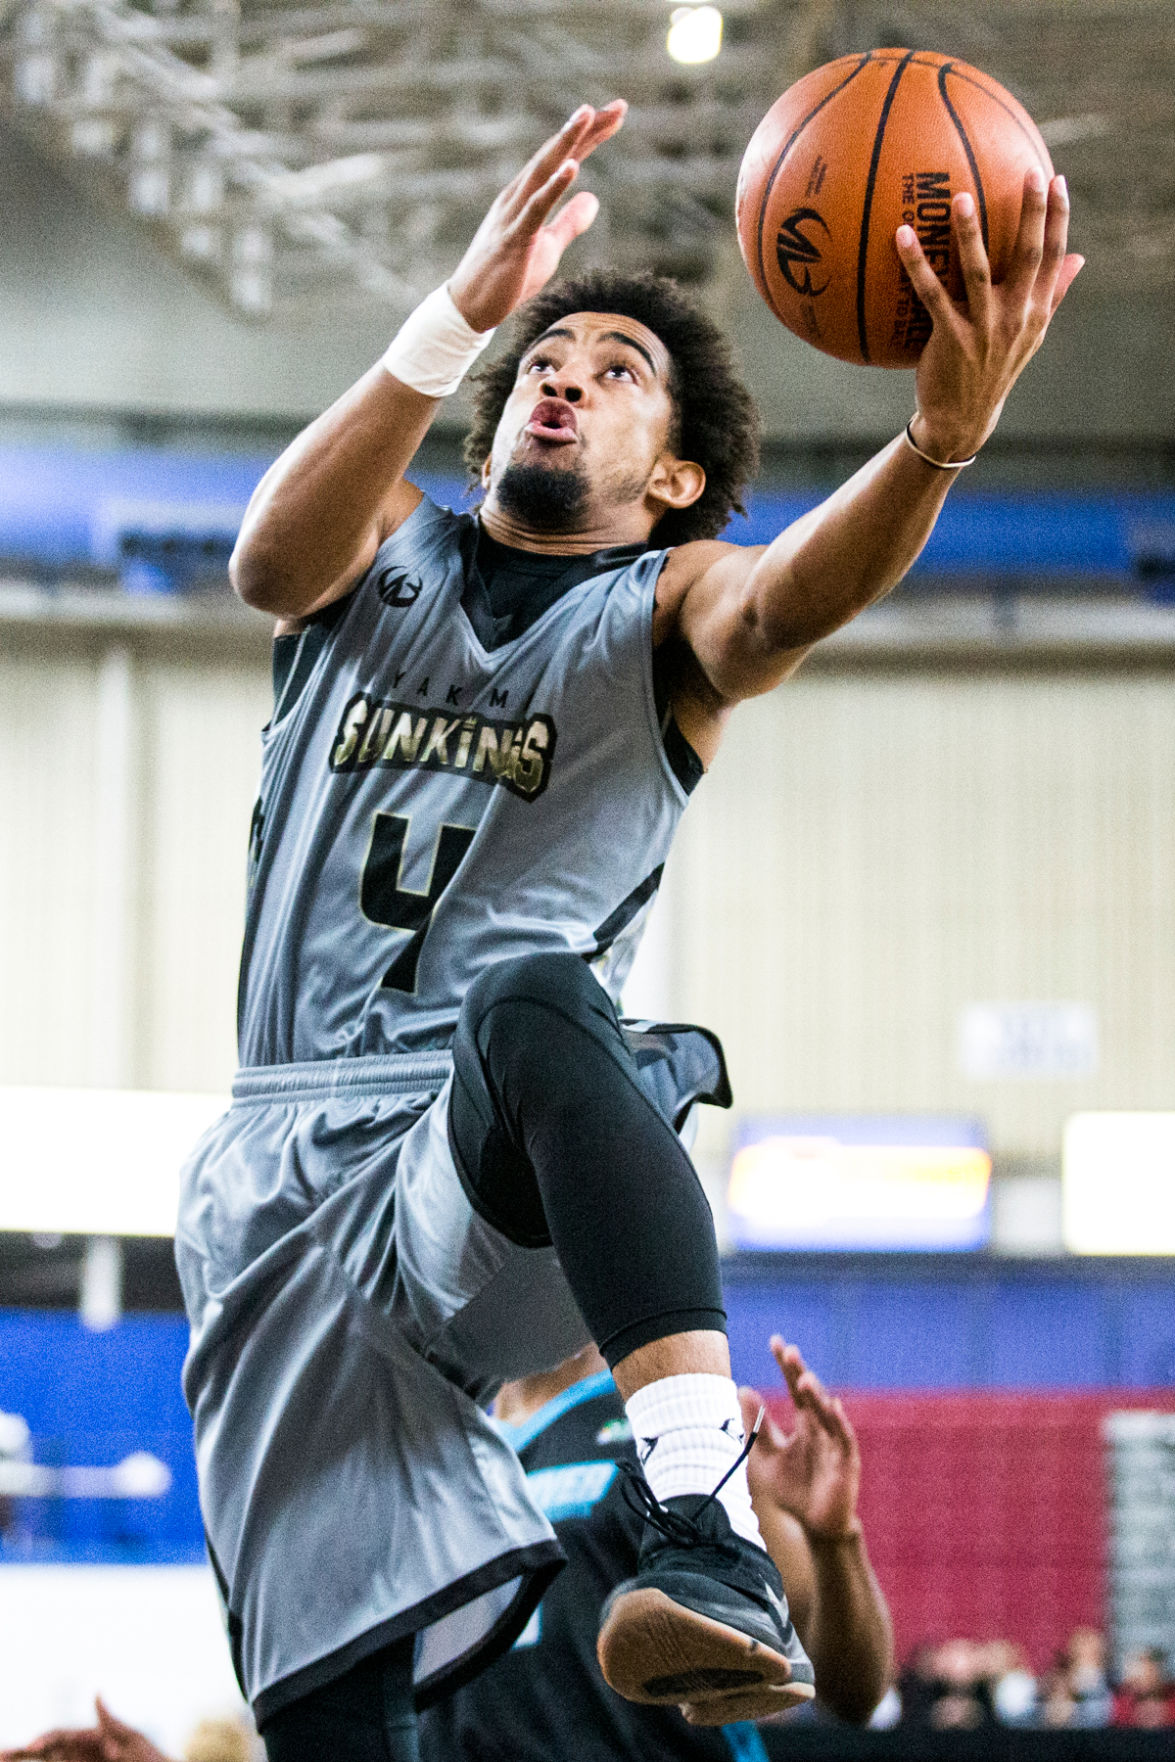 SunKings return to SunDome court in triumphant fashion topping Vancouver Sports Watch